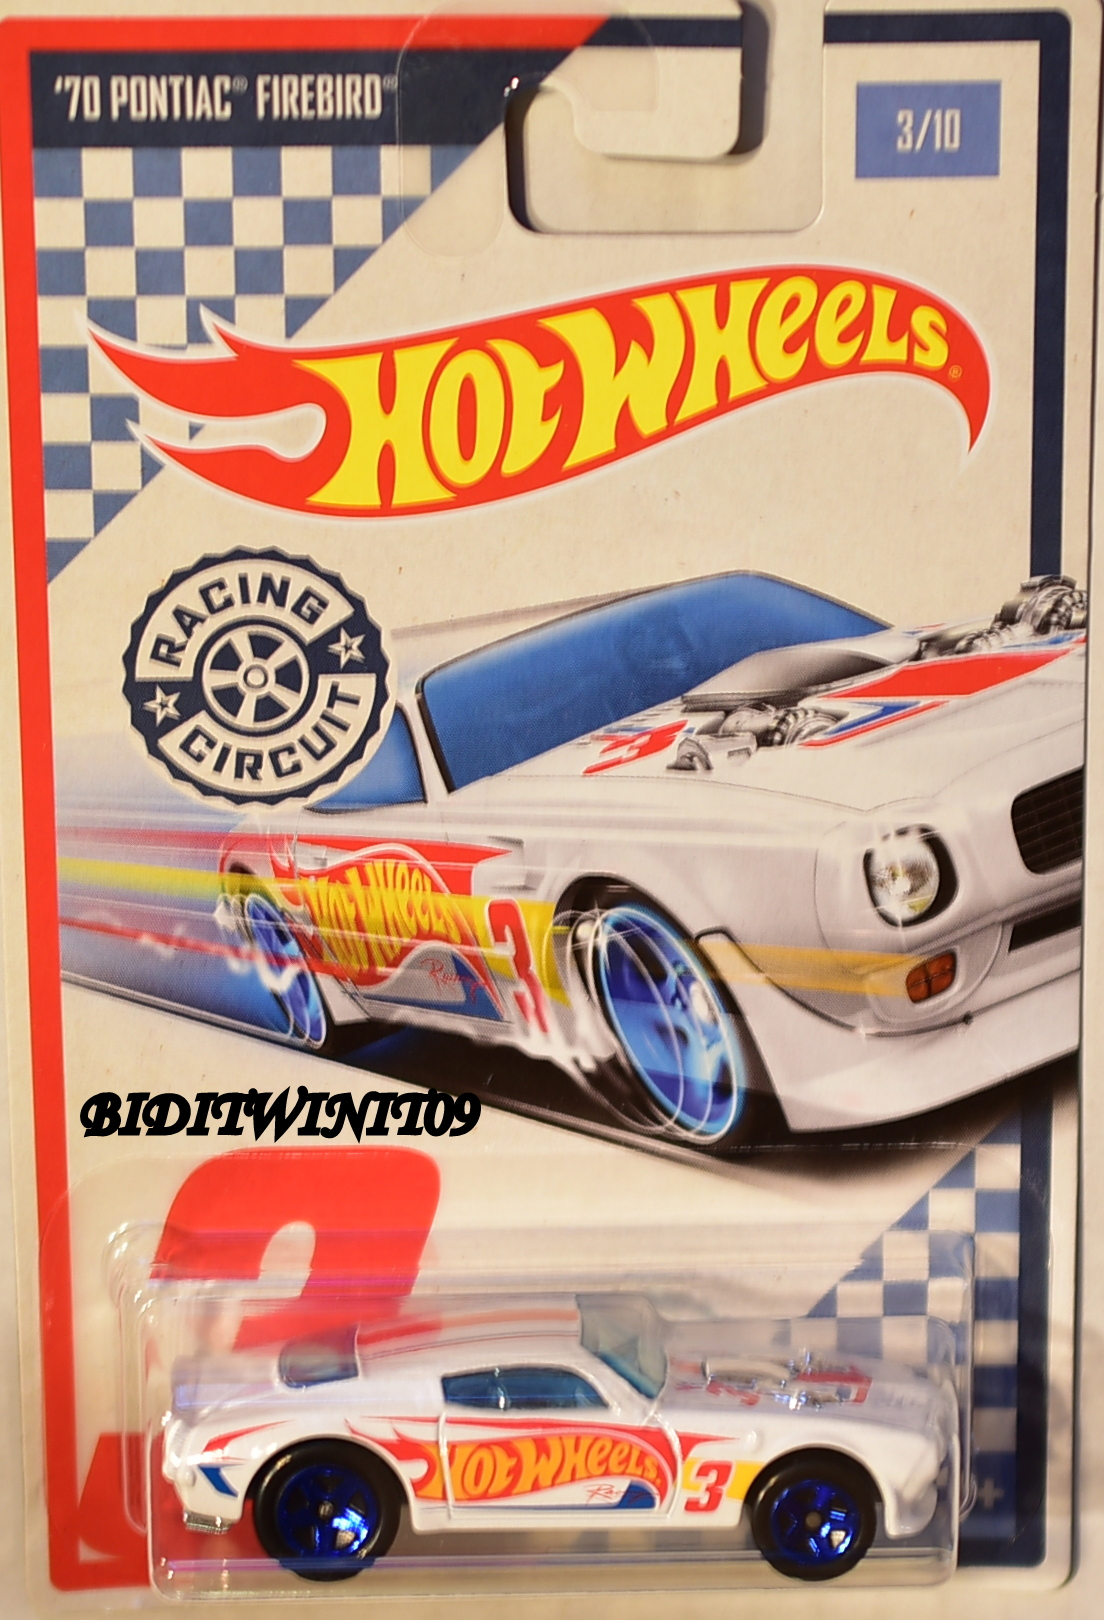 HOT WHEELS RACING CIRCUIT #3/10 '70 PONTIAC FIREBIRD